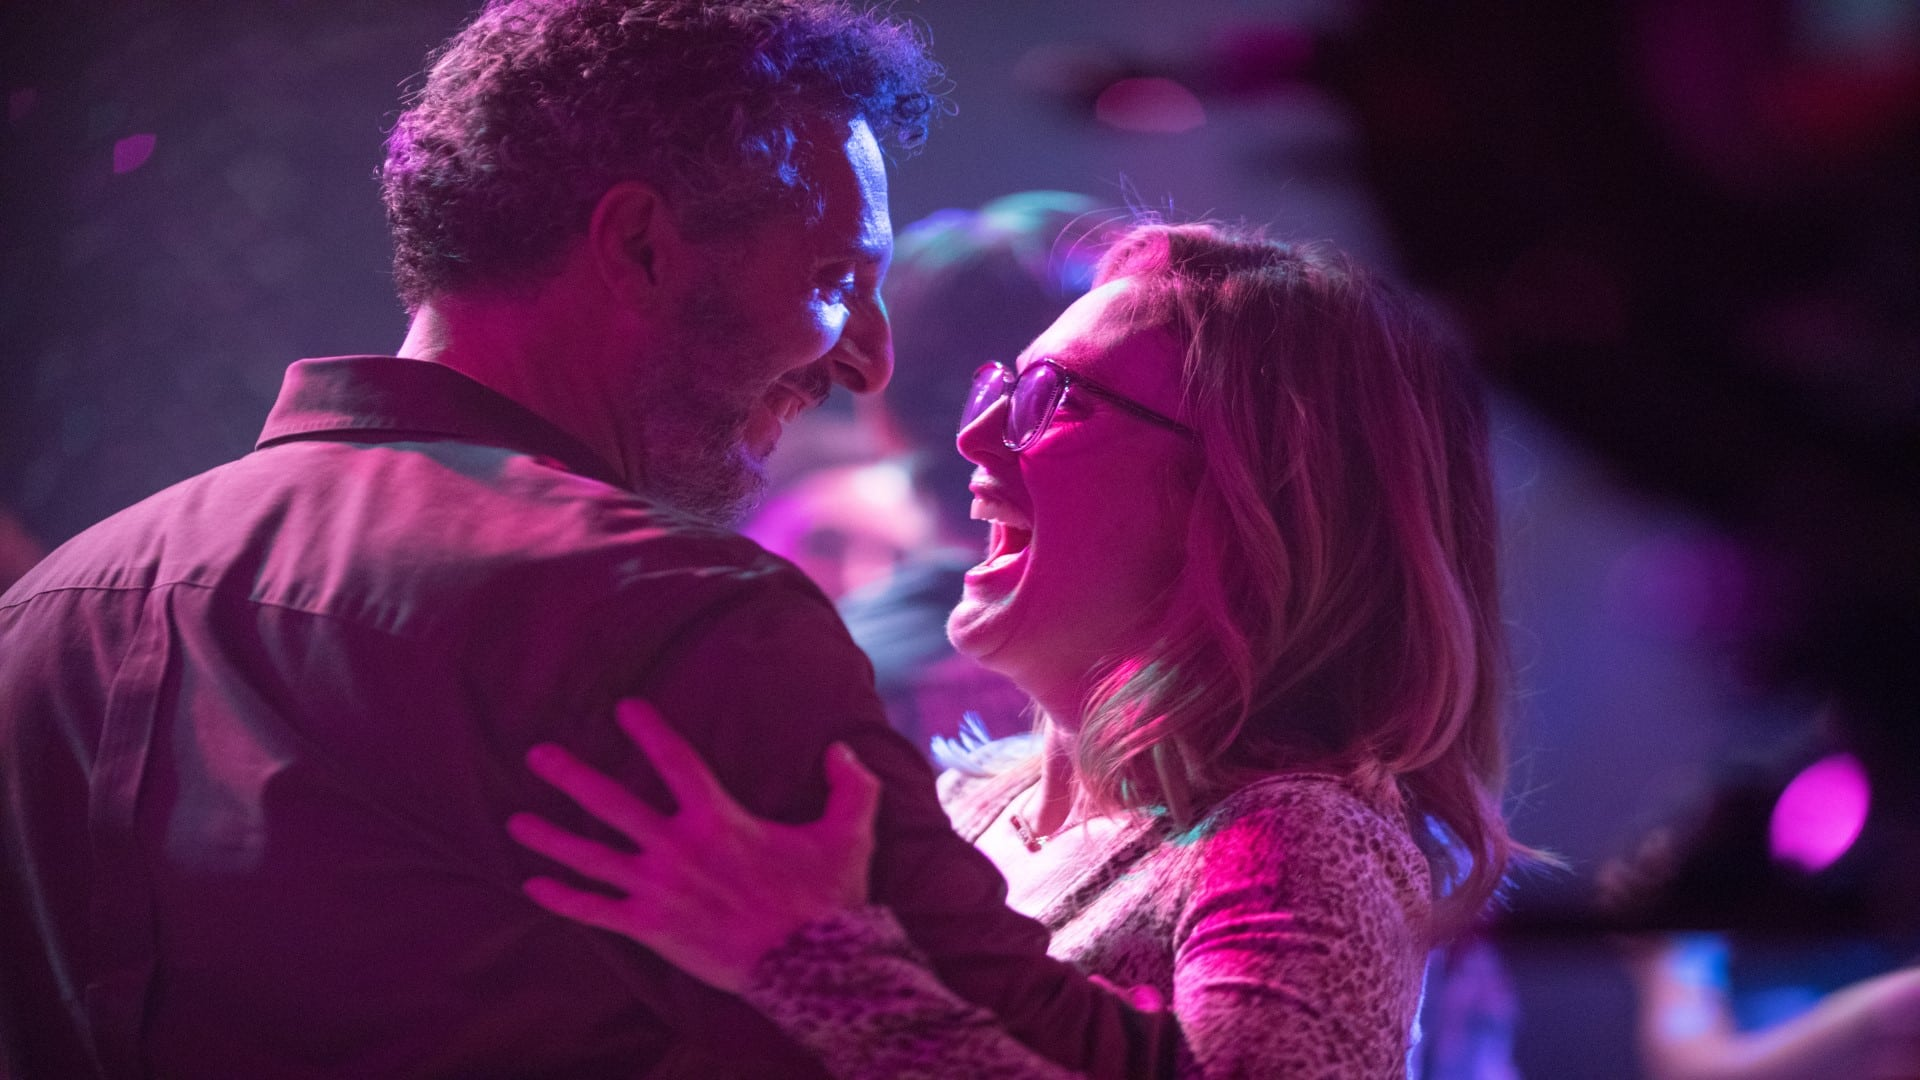 Gloria bell cinematographe.it